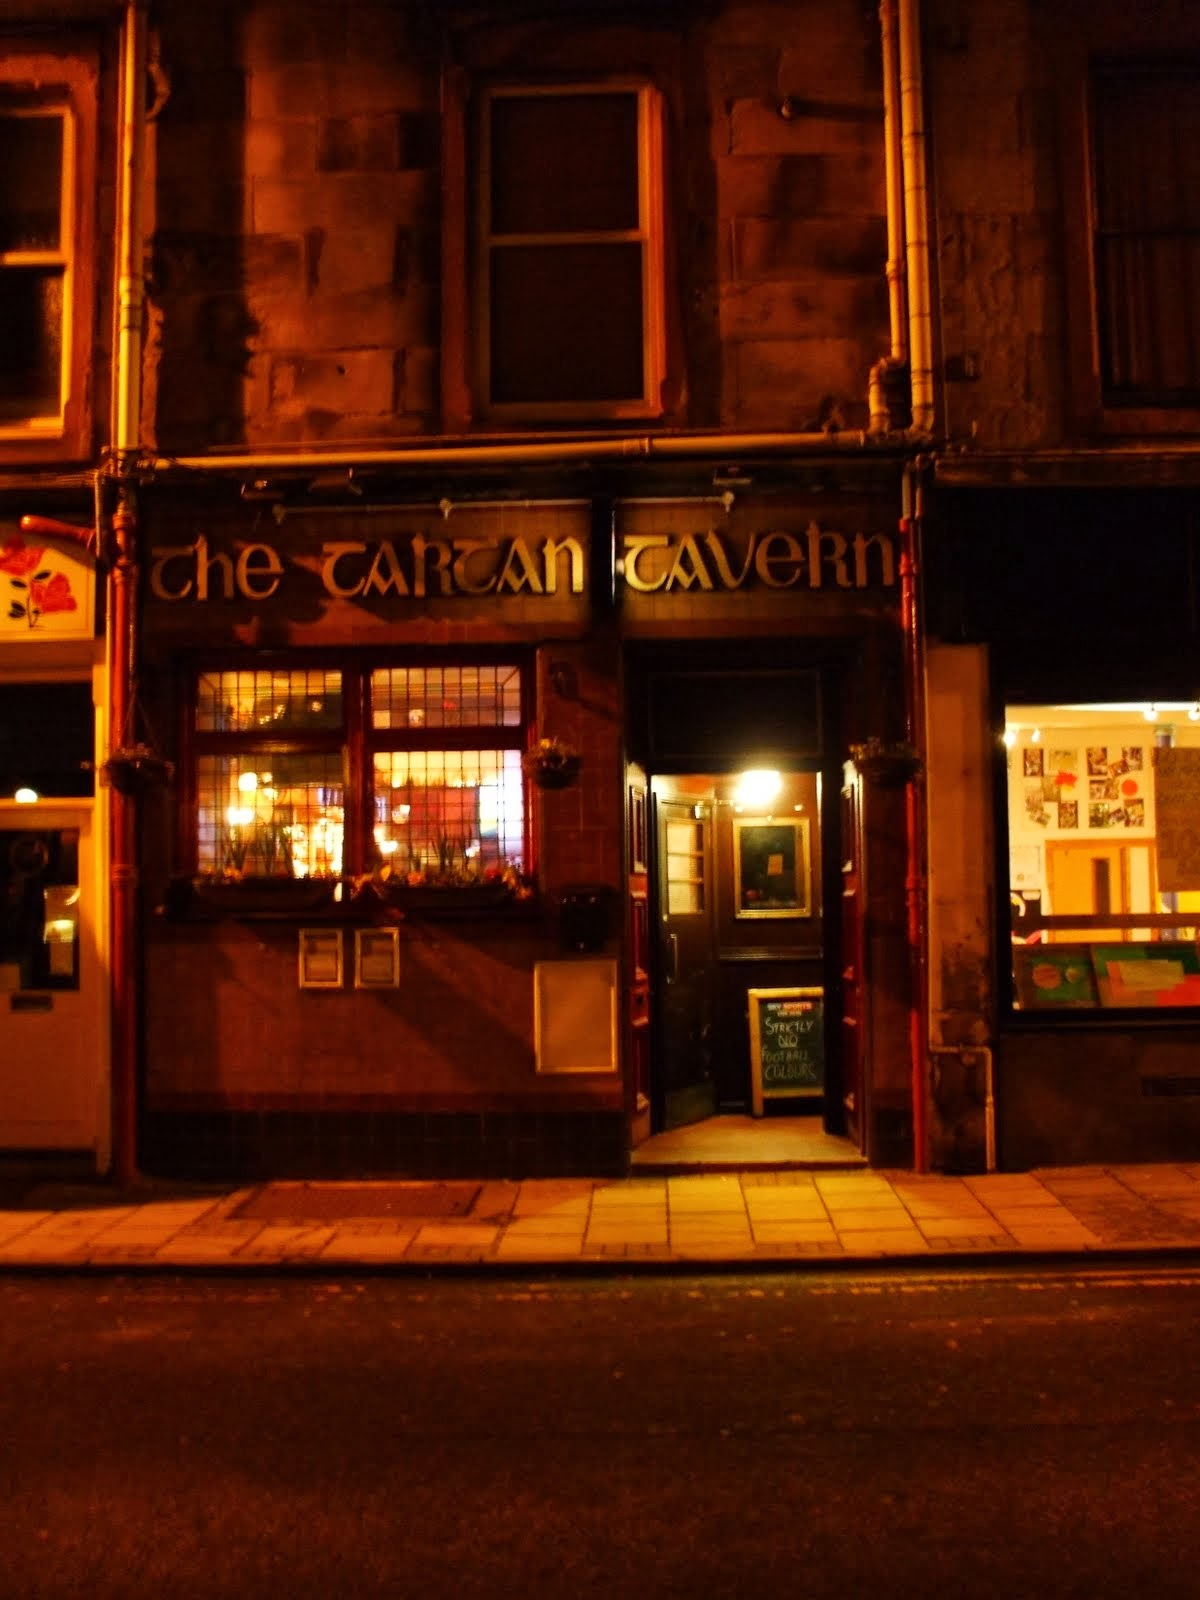 trtan tavern, oban sea penguin